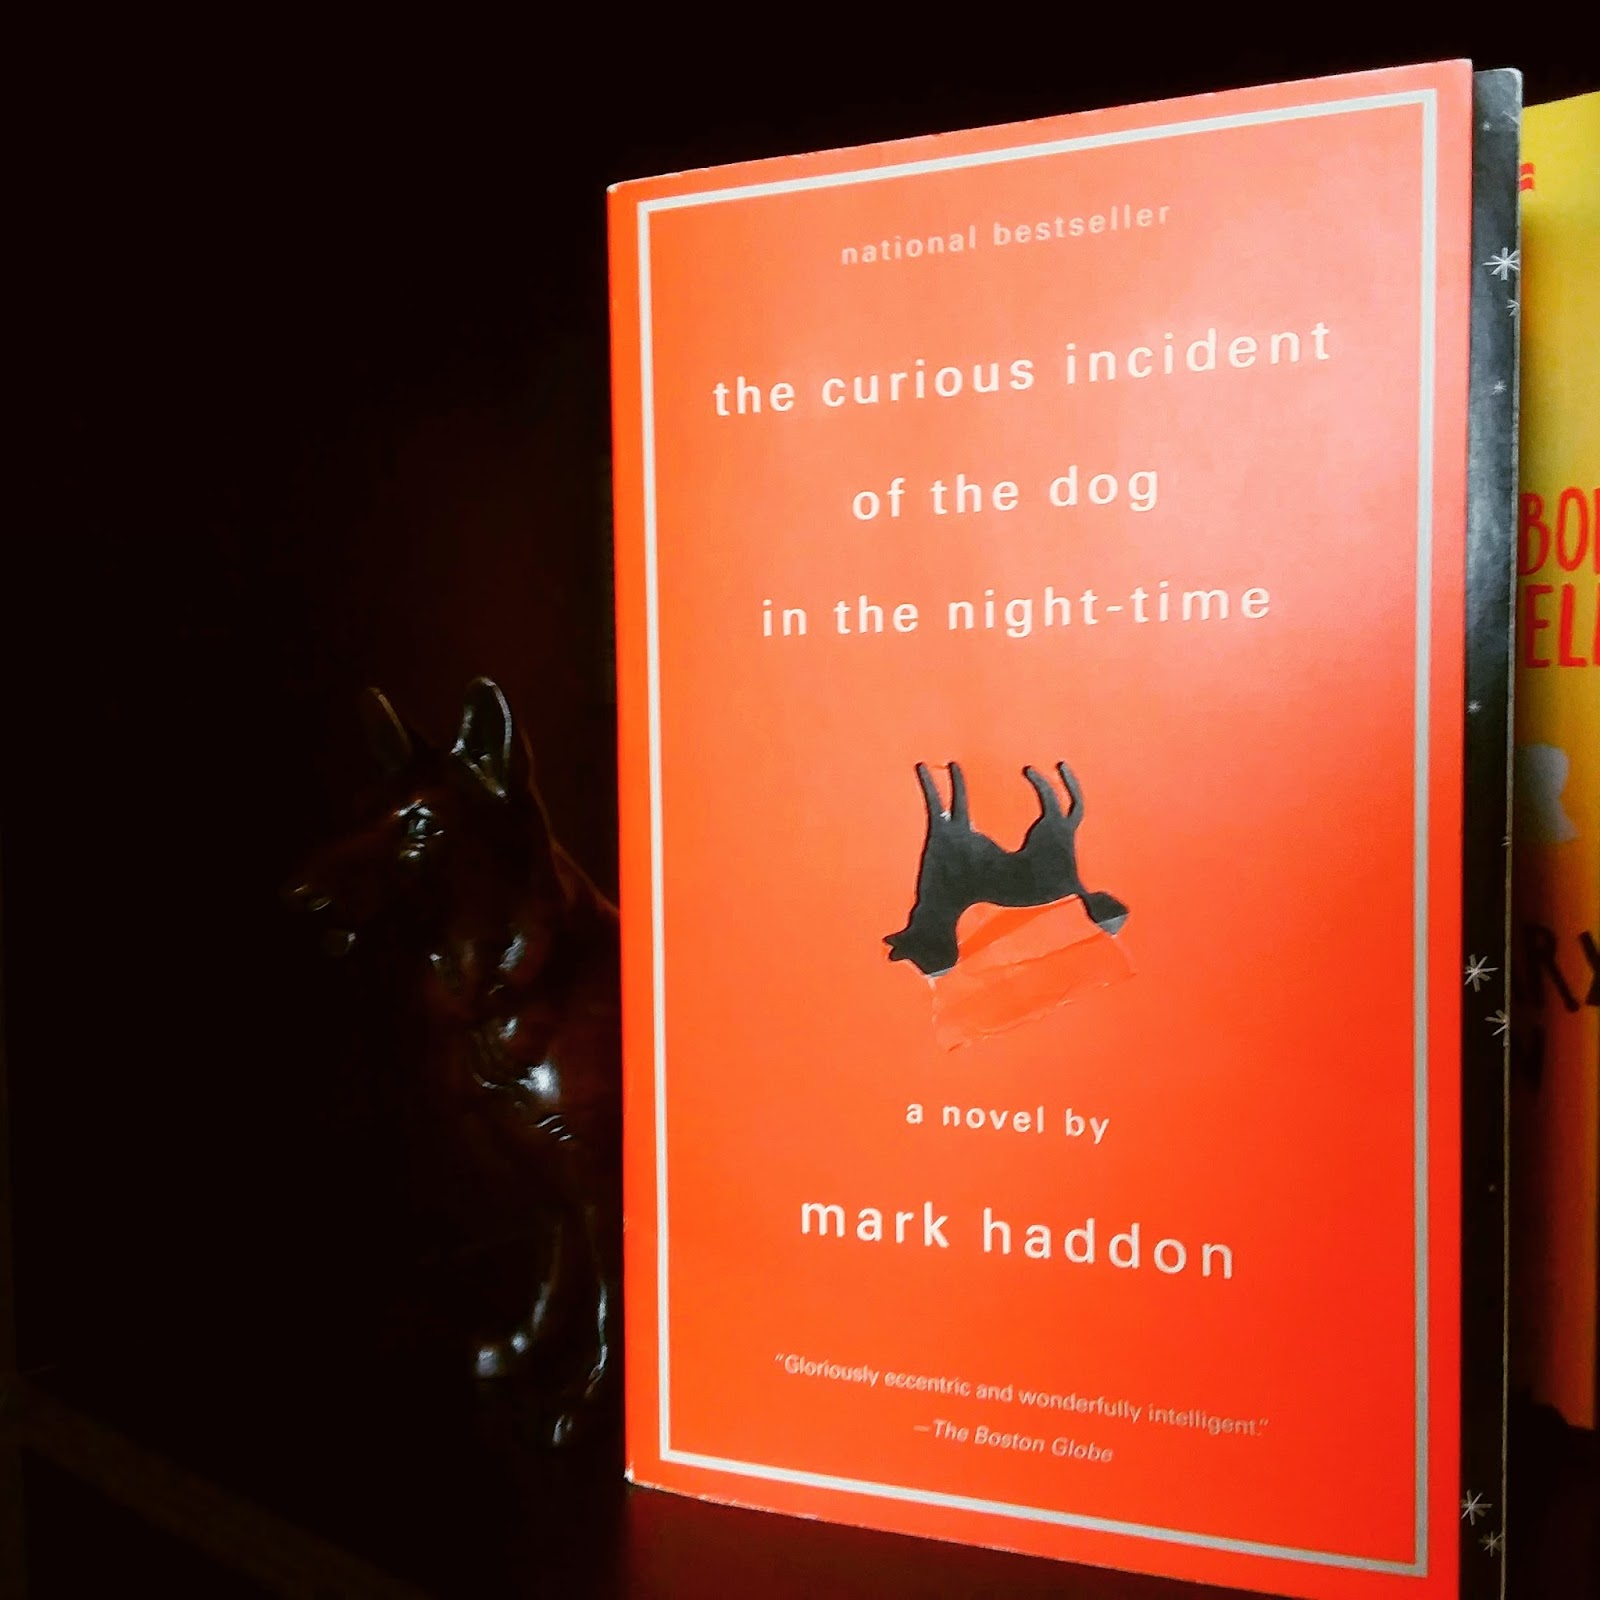 the curious incident of the dog in the night time by mark haddon essay Mark haddon is a writer and artist his bestselling novel, the curious incident of the dog in the night-time, was published simultaneously by jonathan cape and david fickling in 2003 it won seventeen literary prizes, including the whitbread award.